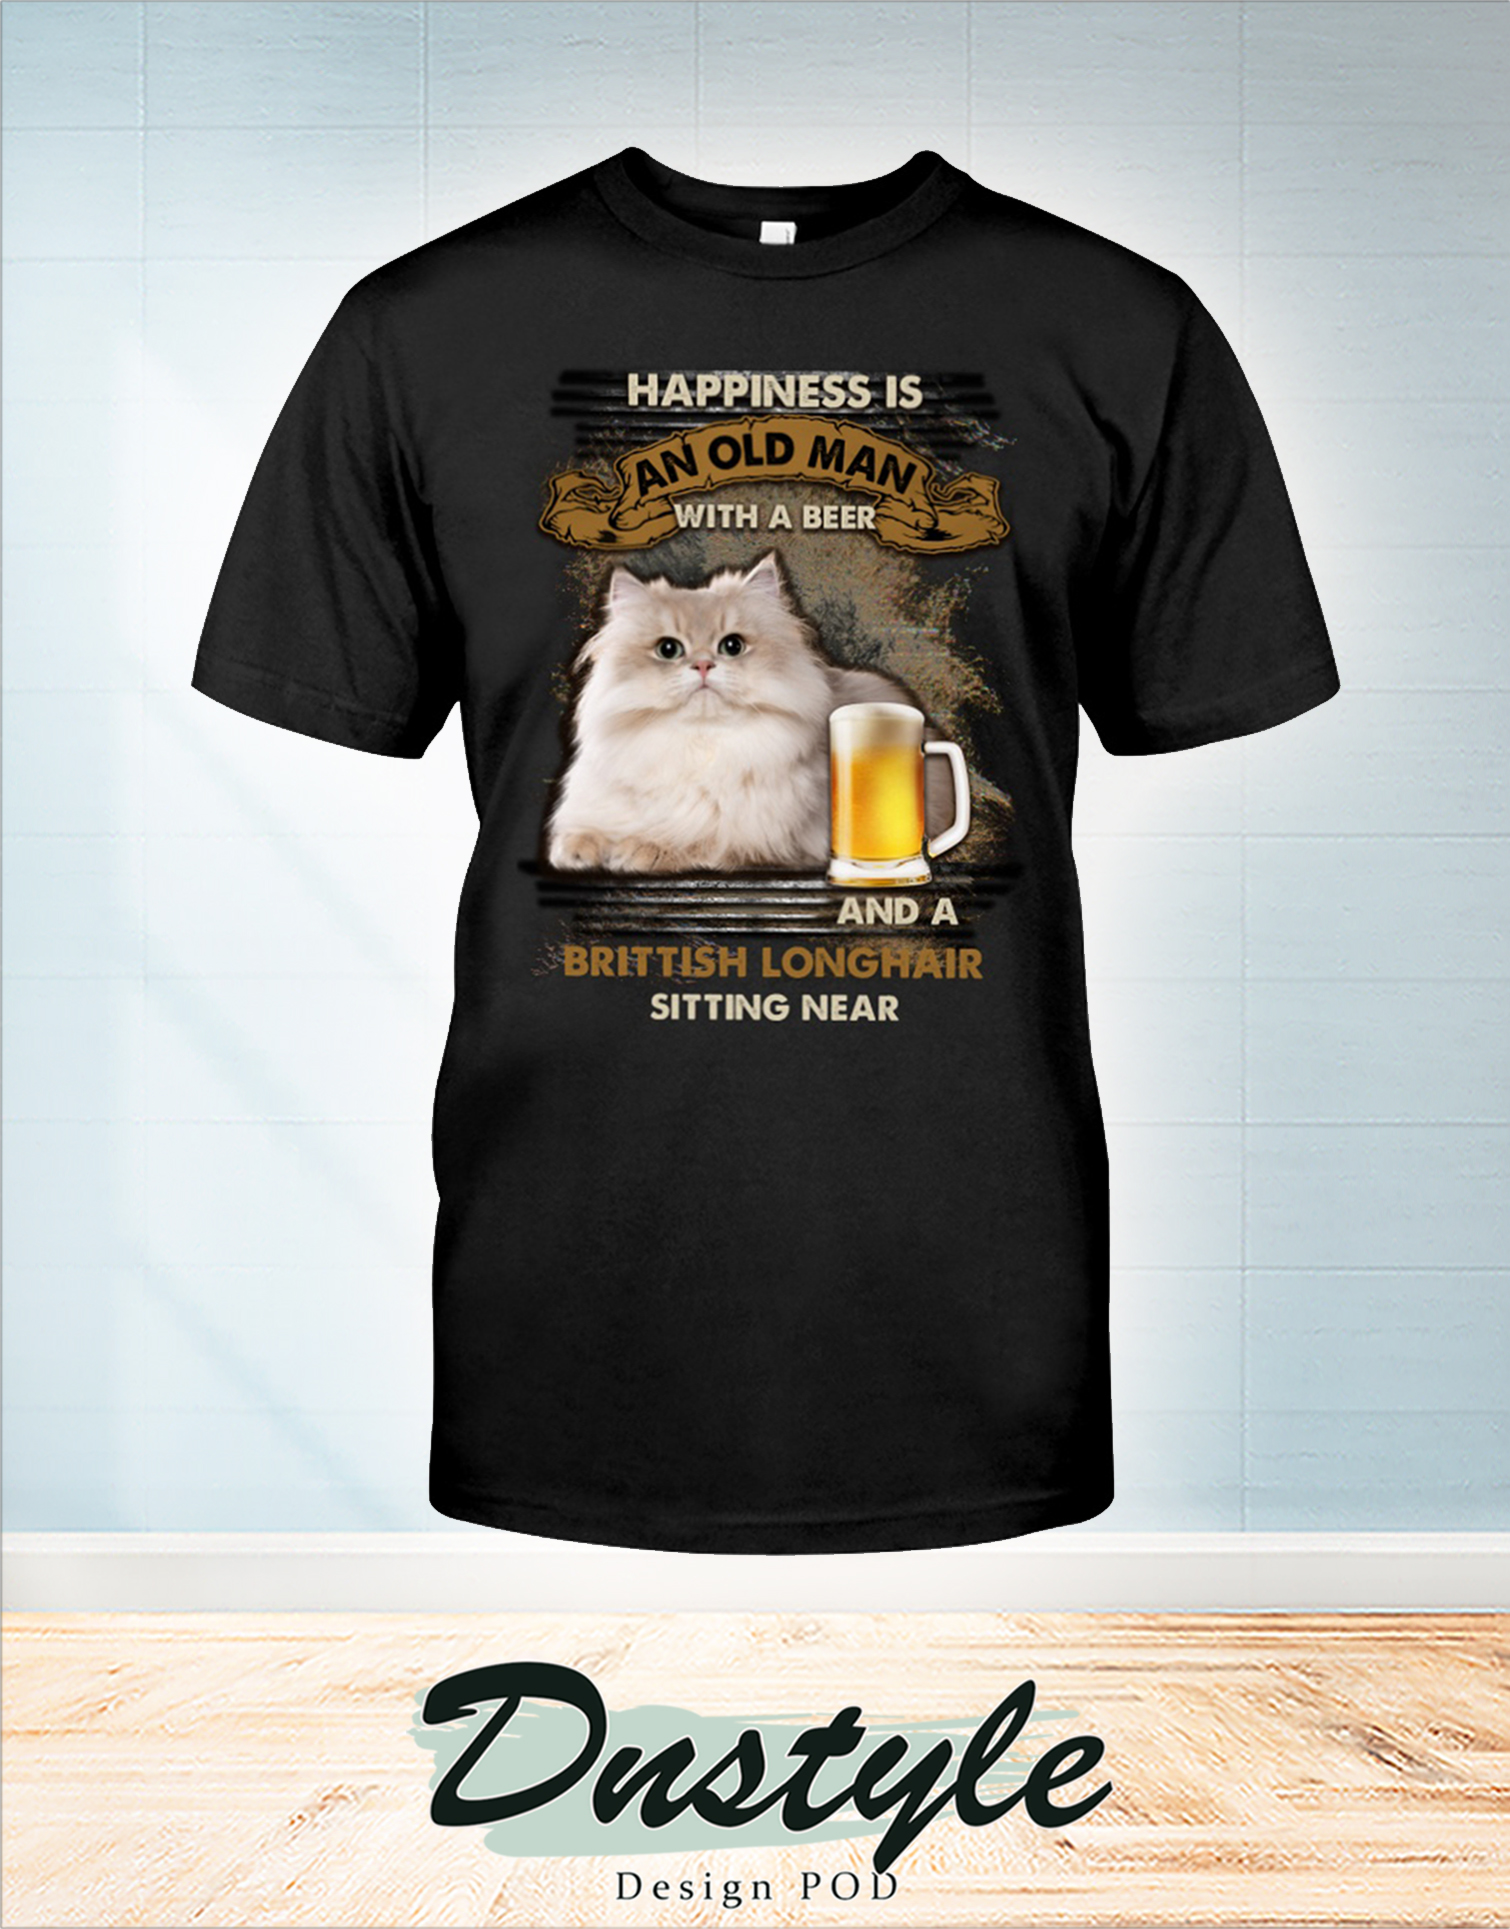 Happiness is an old man with a beer and a Brittish Longhair sitting near t-shirt